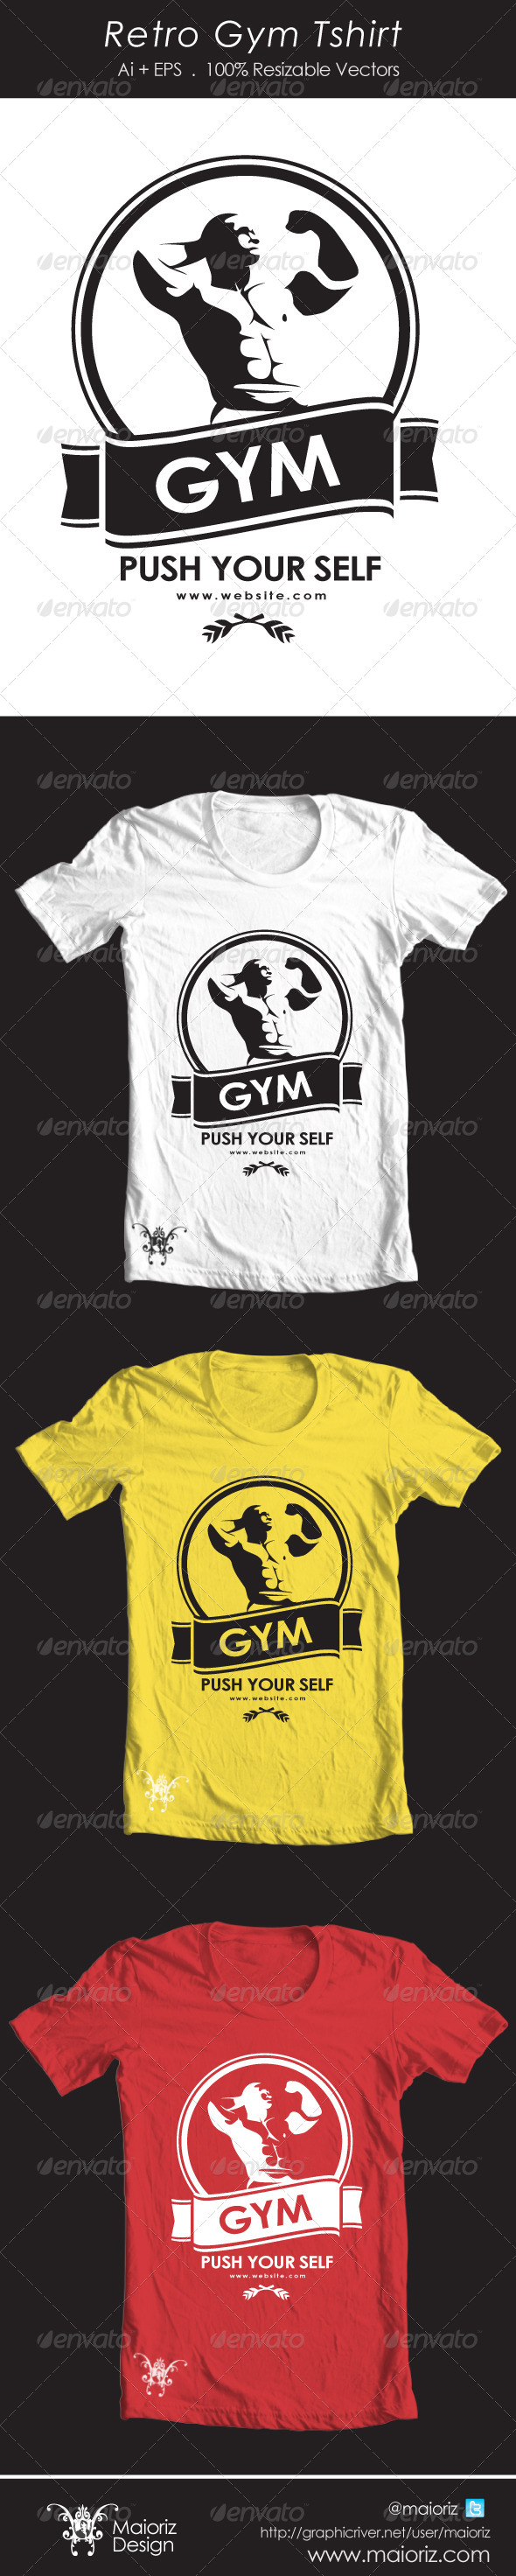 GraphicRiver Retro Gym Tshirt 4576809